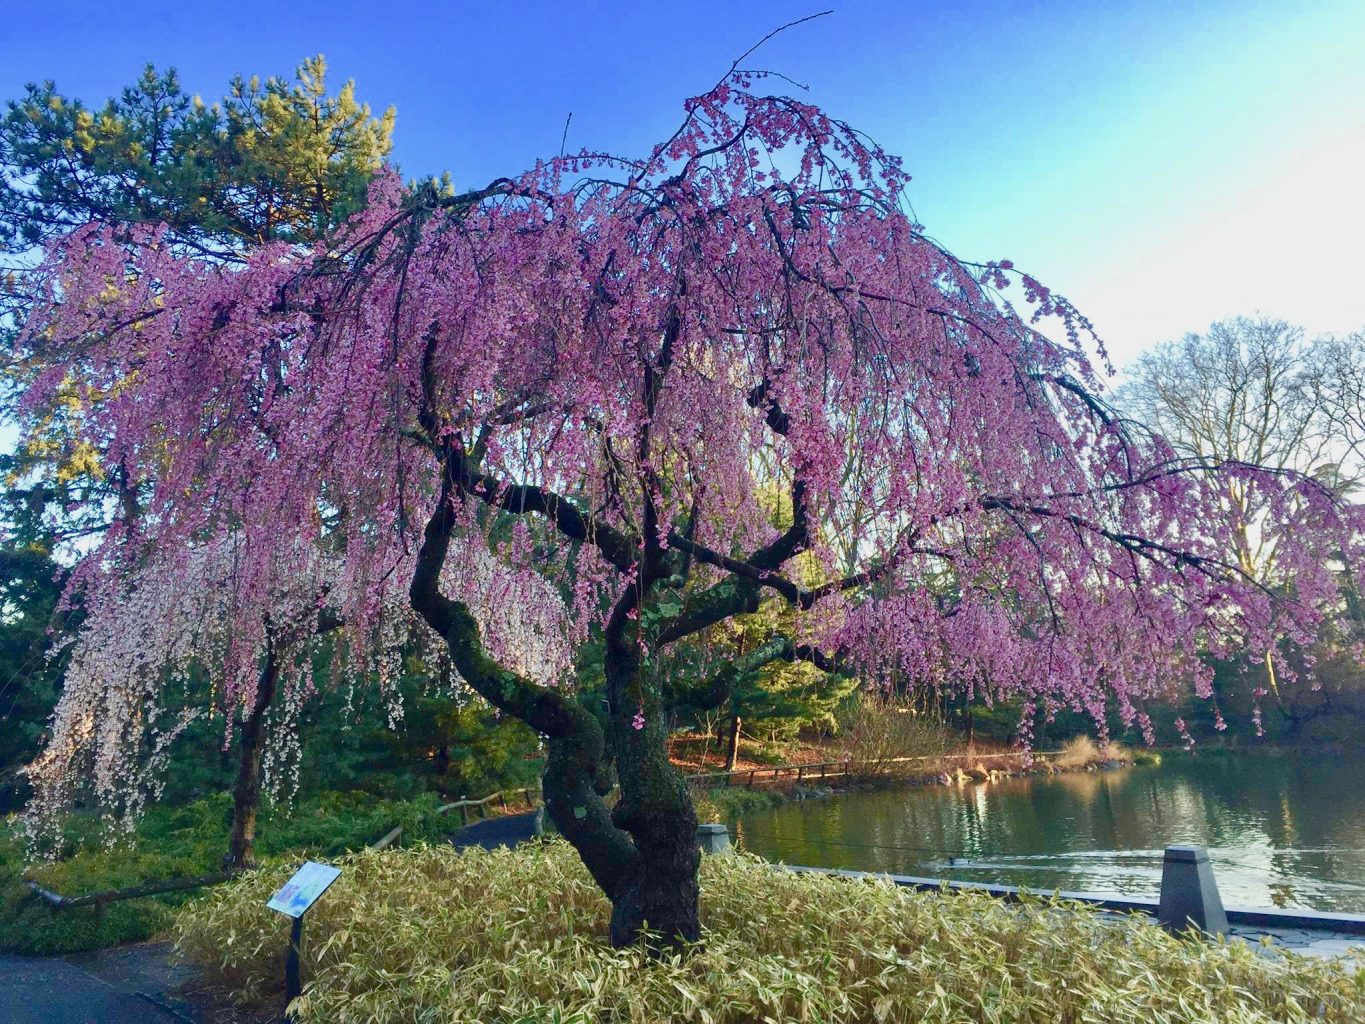 weeping cherry at the Brooklyn Botanic Garden, a wonderful nyc place to see cherry blossoms